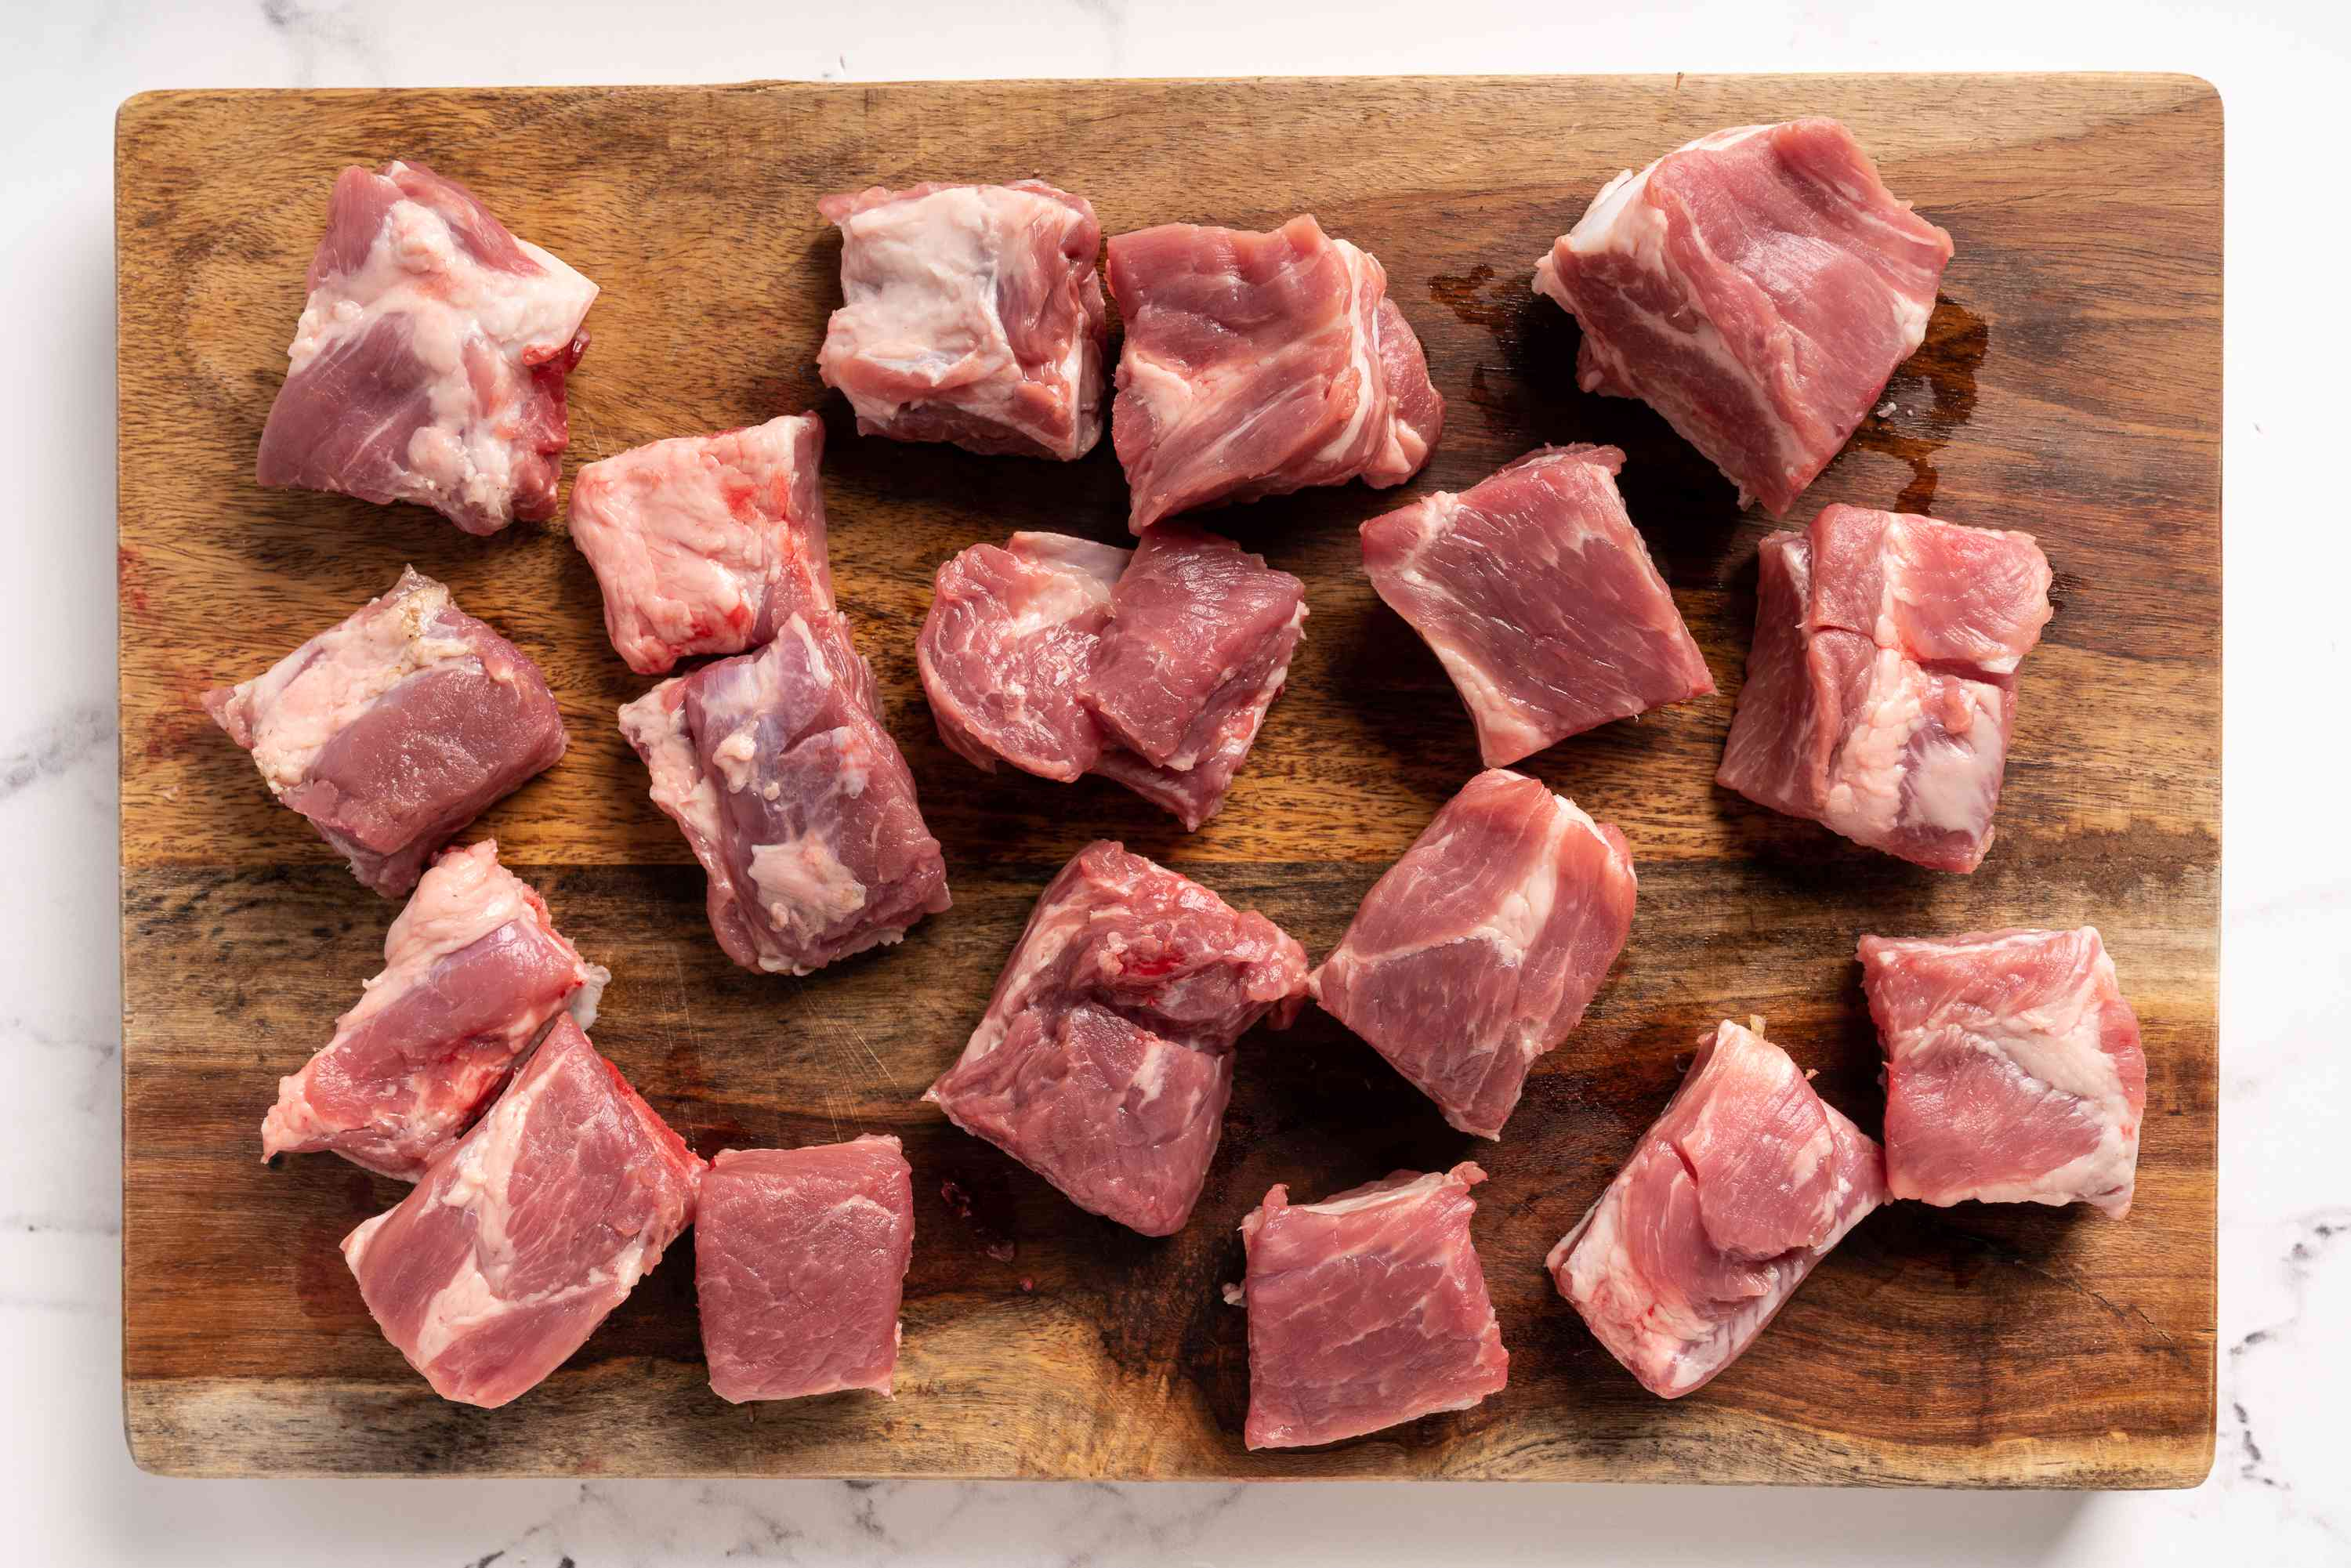 Trim the ribs and cut into 1-inch pieces